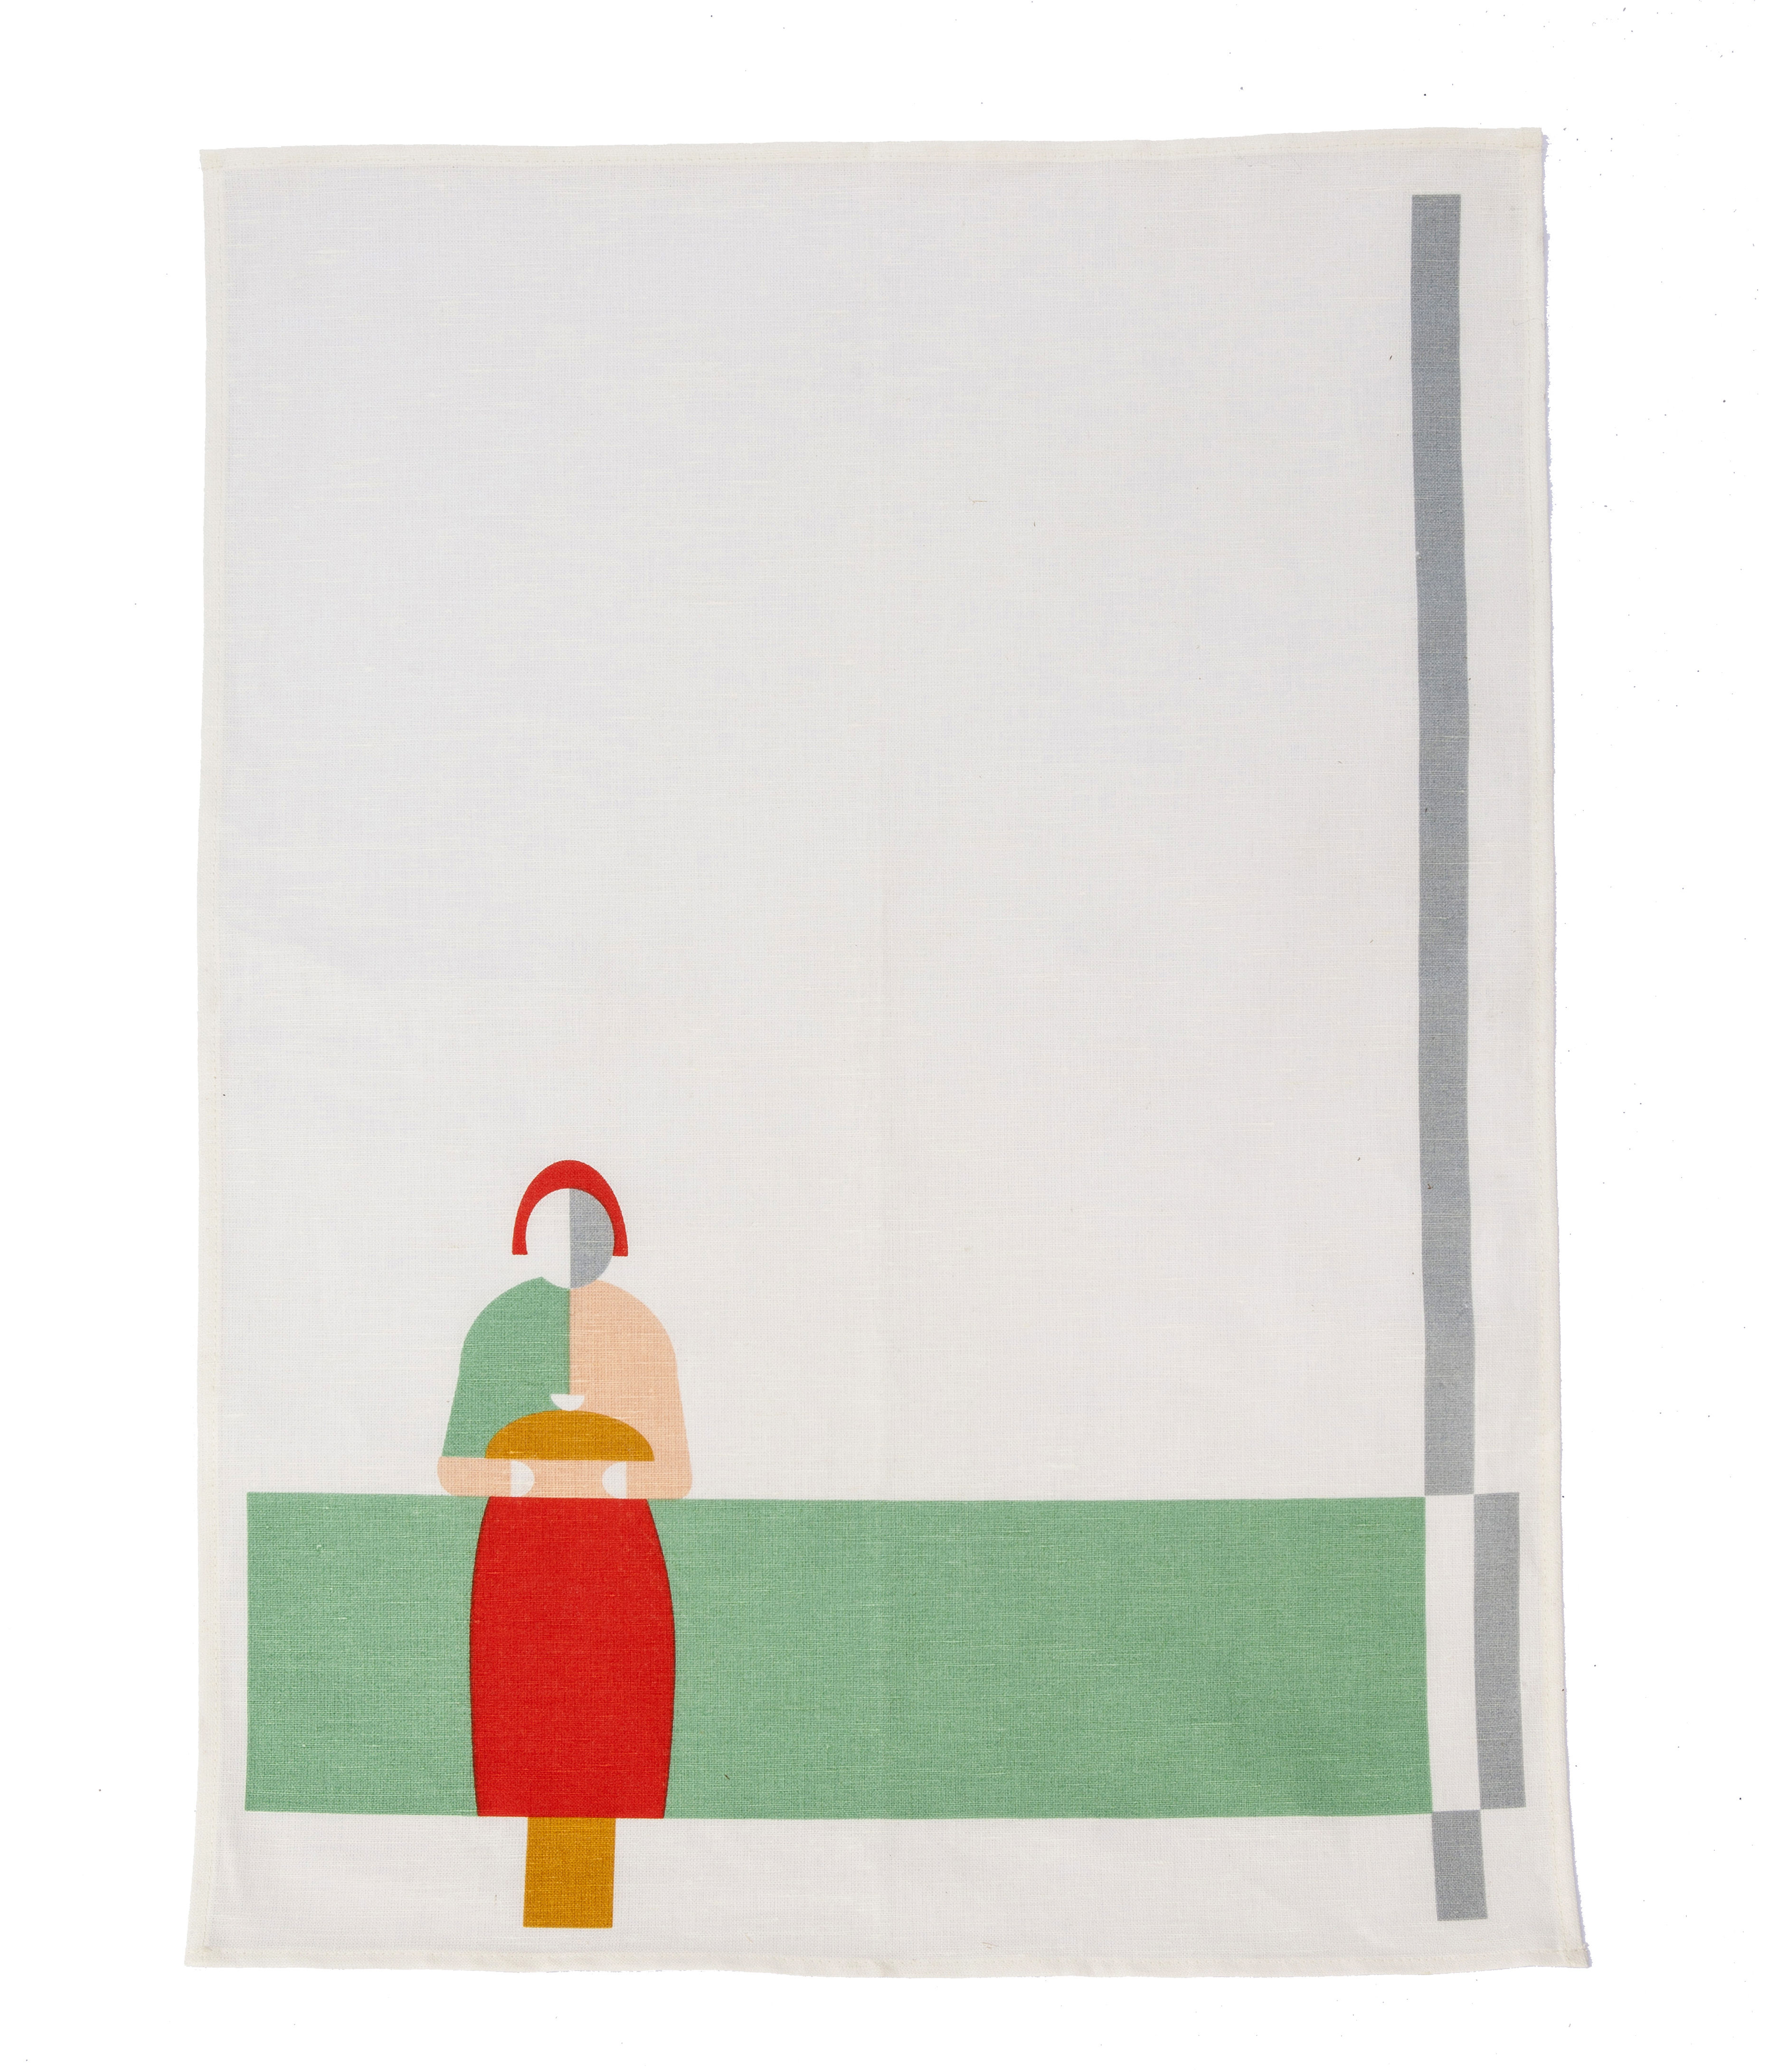 Kitchenware - Tea Towels & Aprons - Bread & Salt Tea towel - 70 x 47 cm by studio ROOF - White / Multicolored - Cotton, Linen